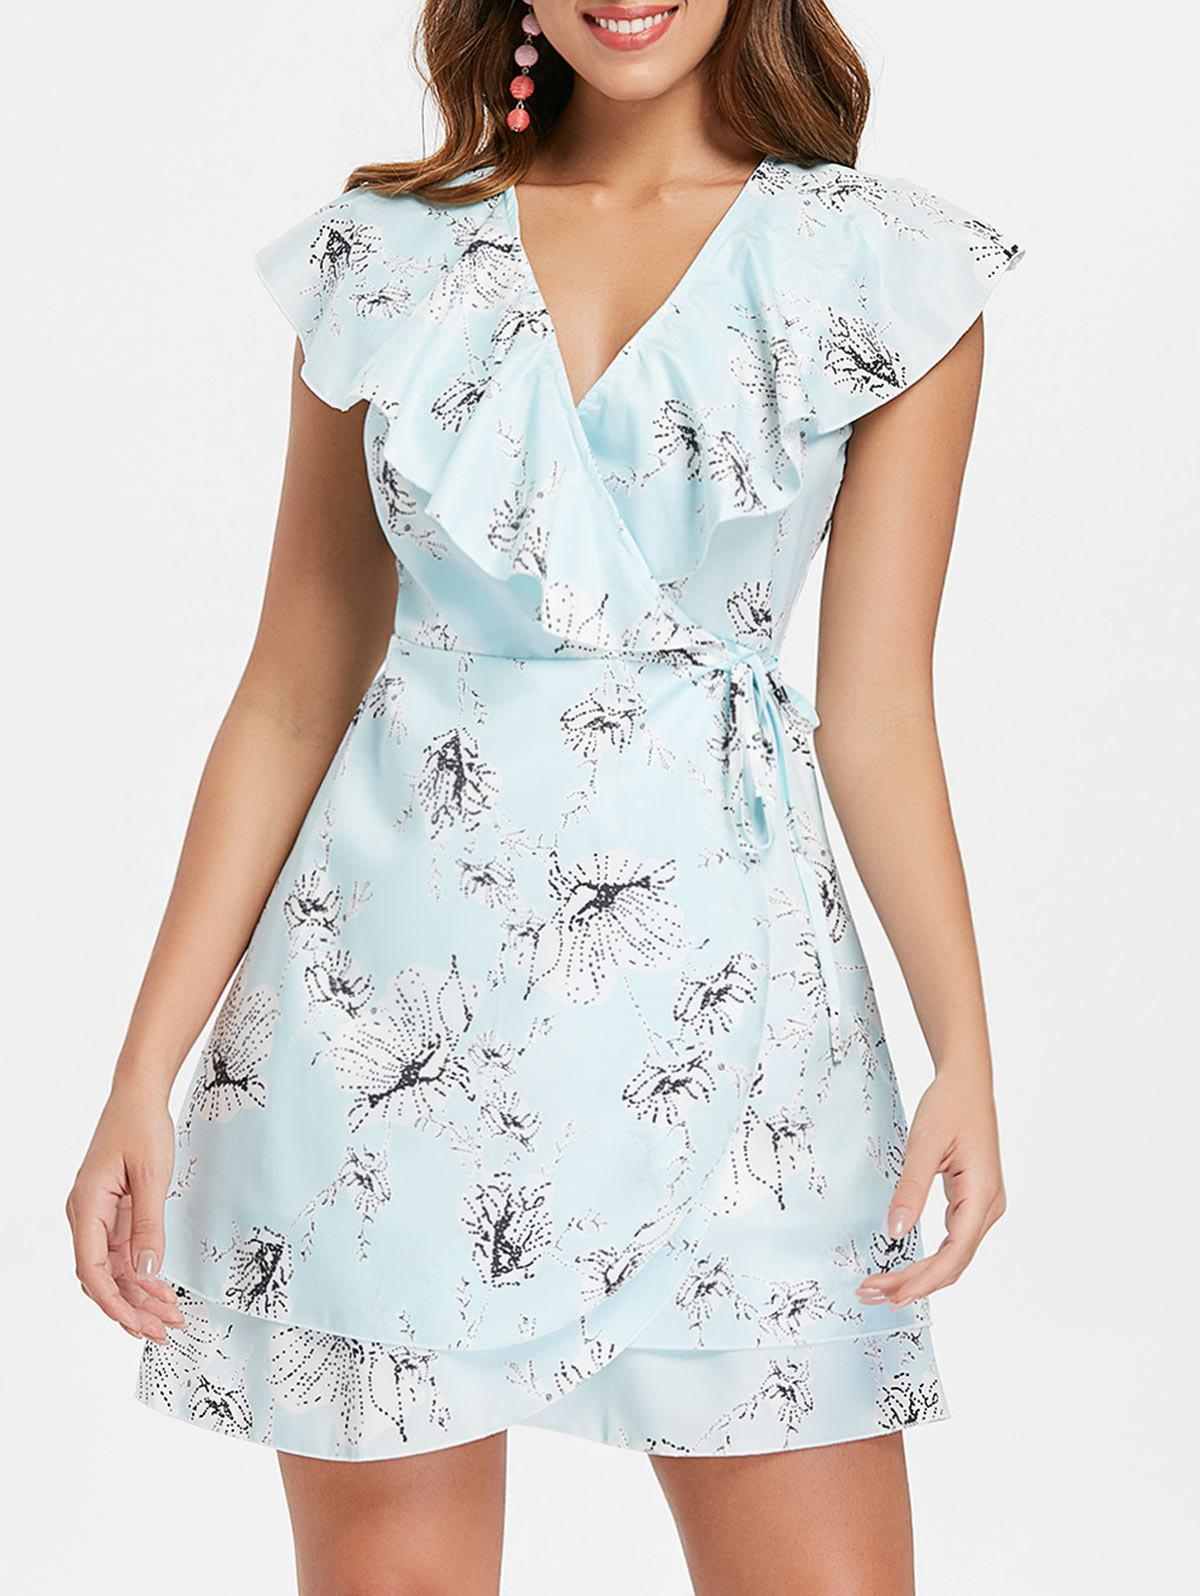 New Floral Print Ruffle Insert Wrap Dress